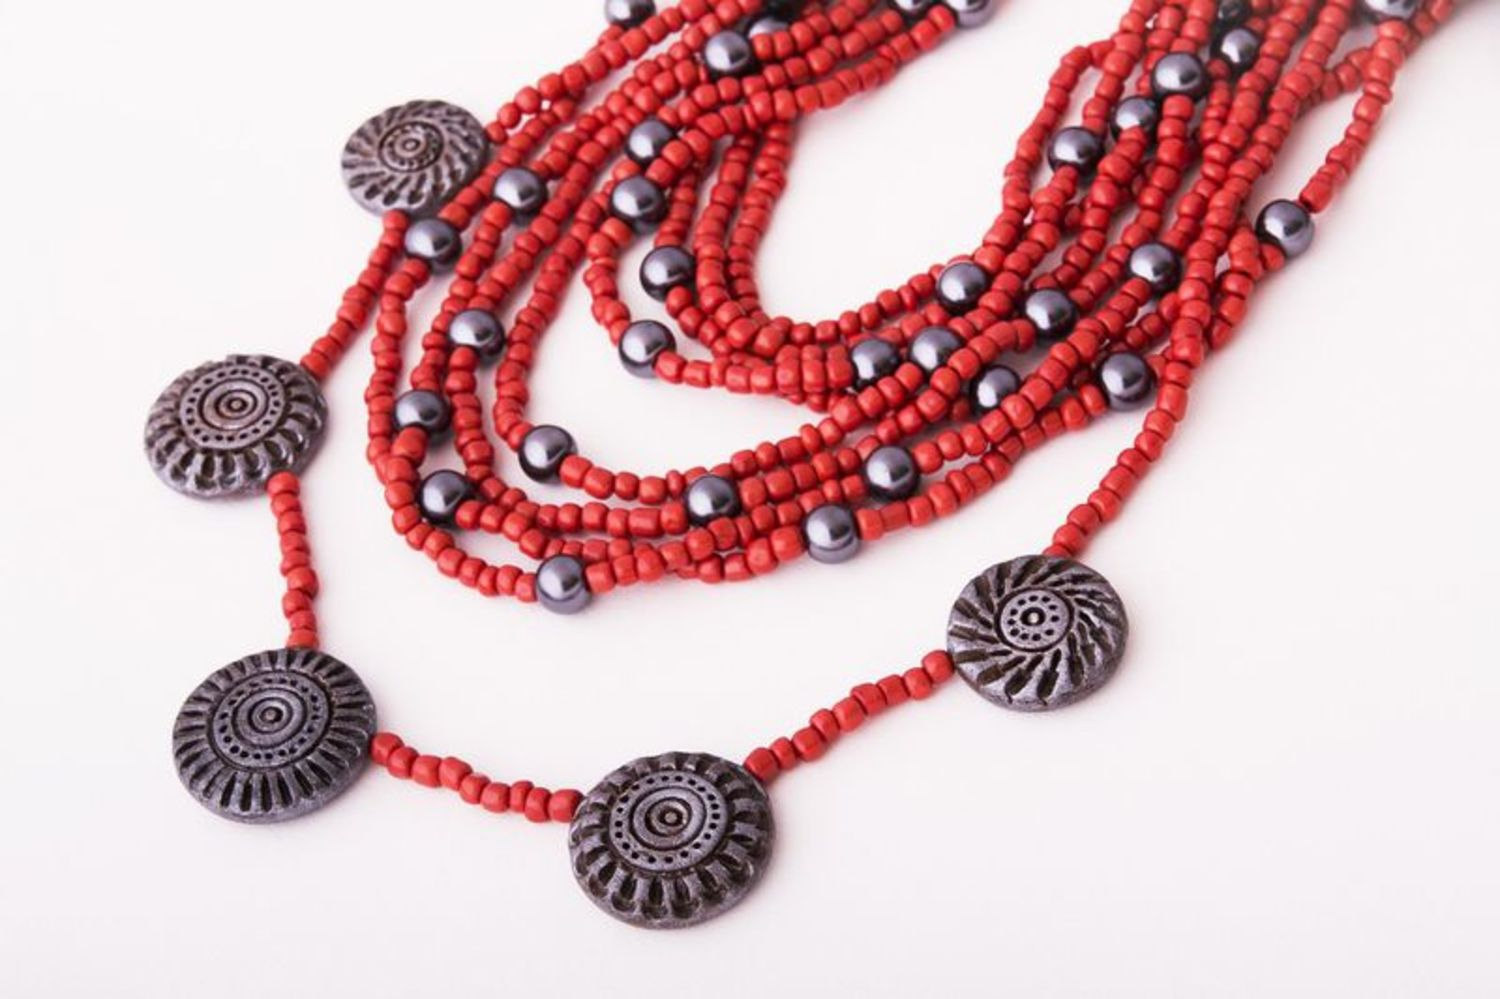 Necklace made of beads photo 1